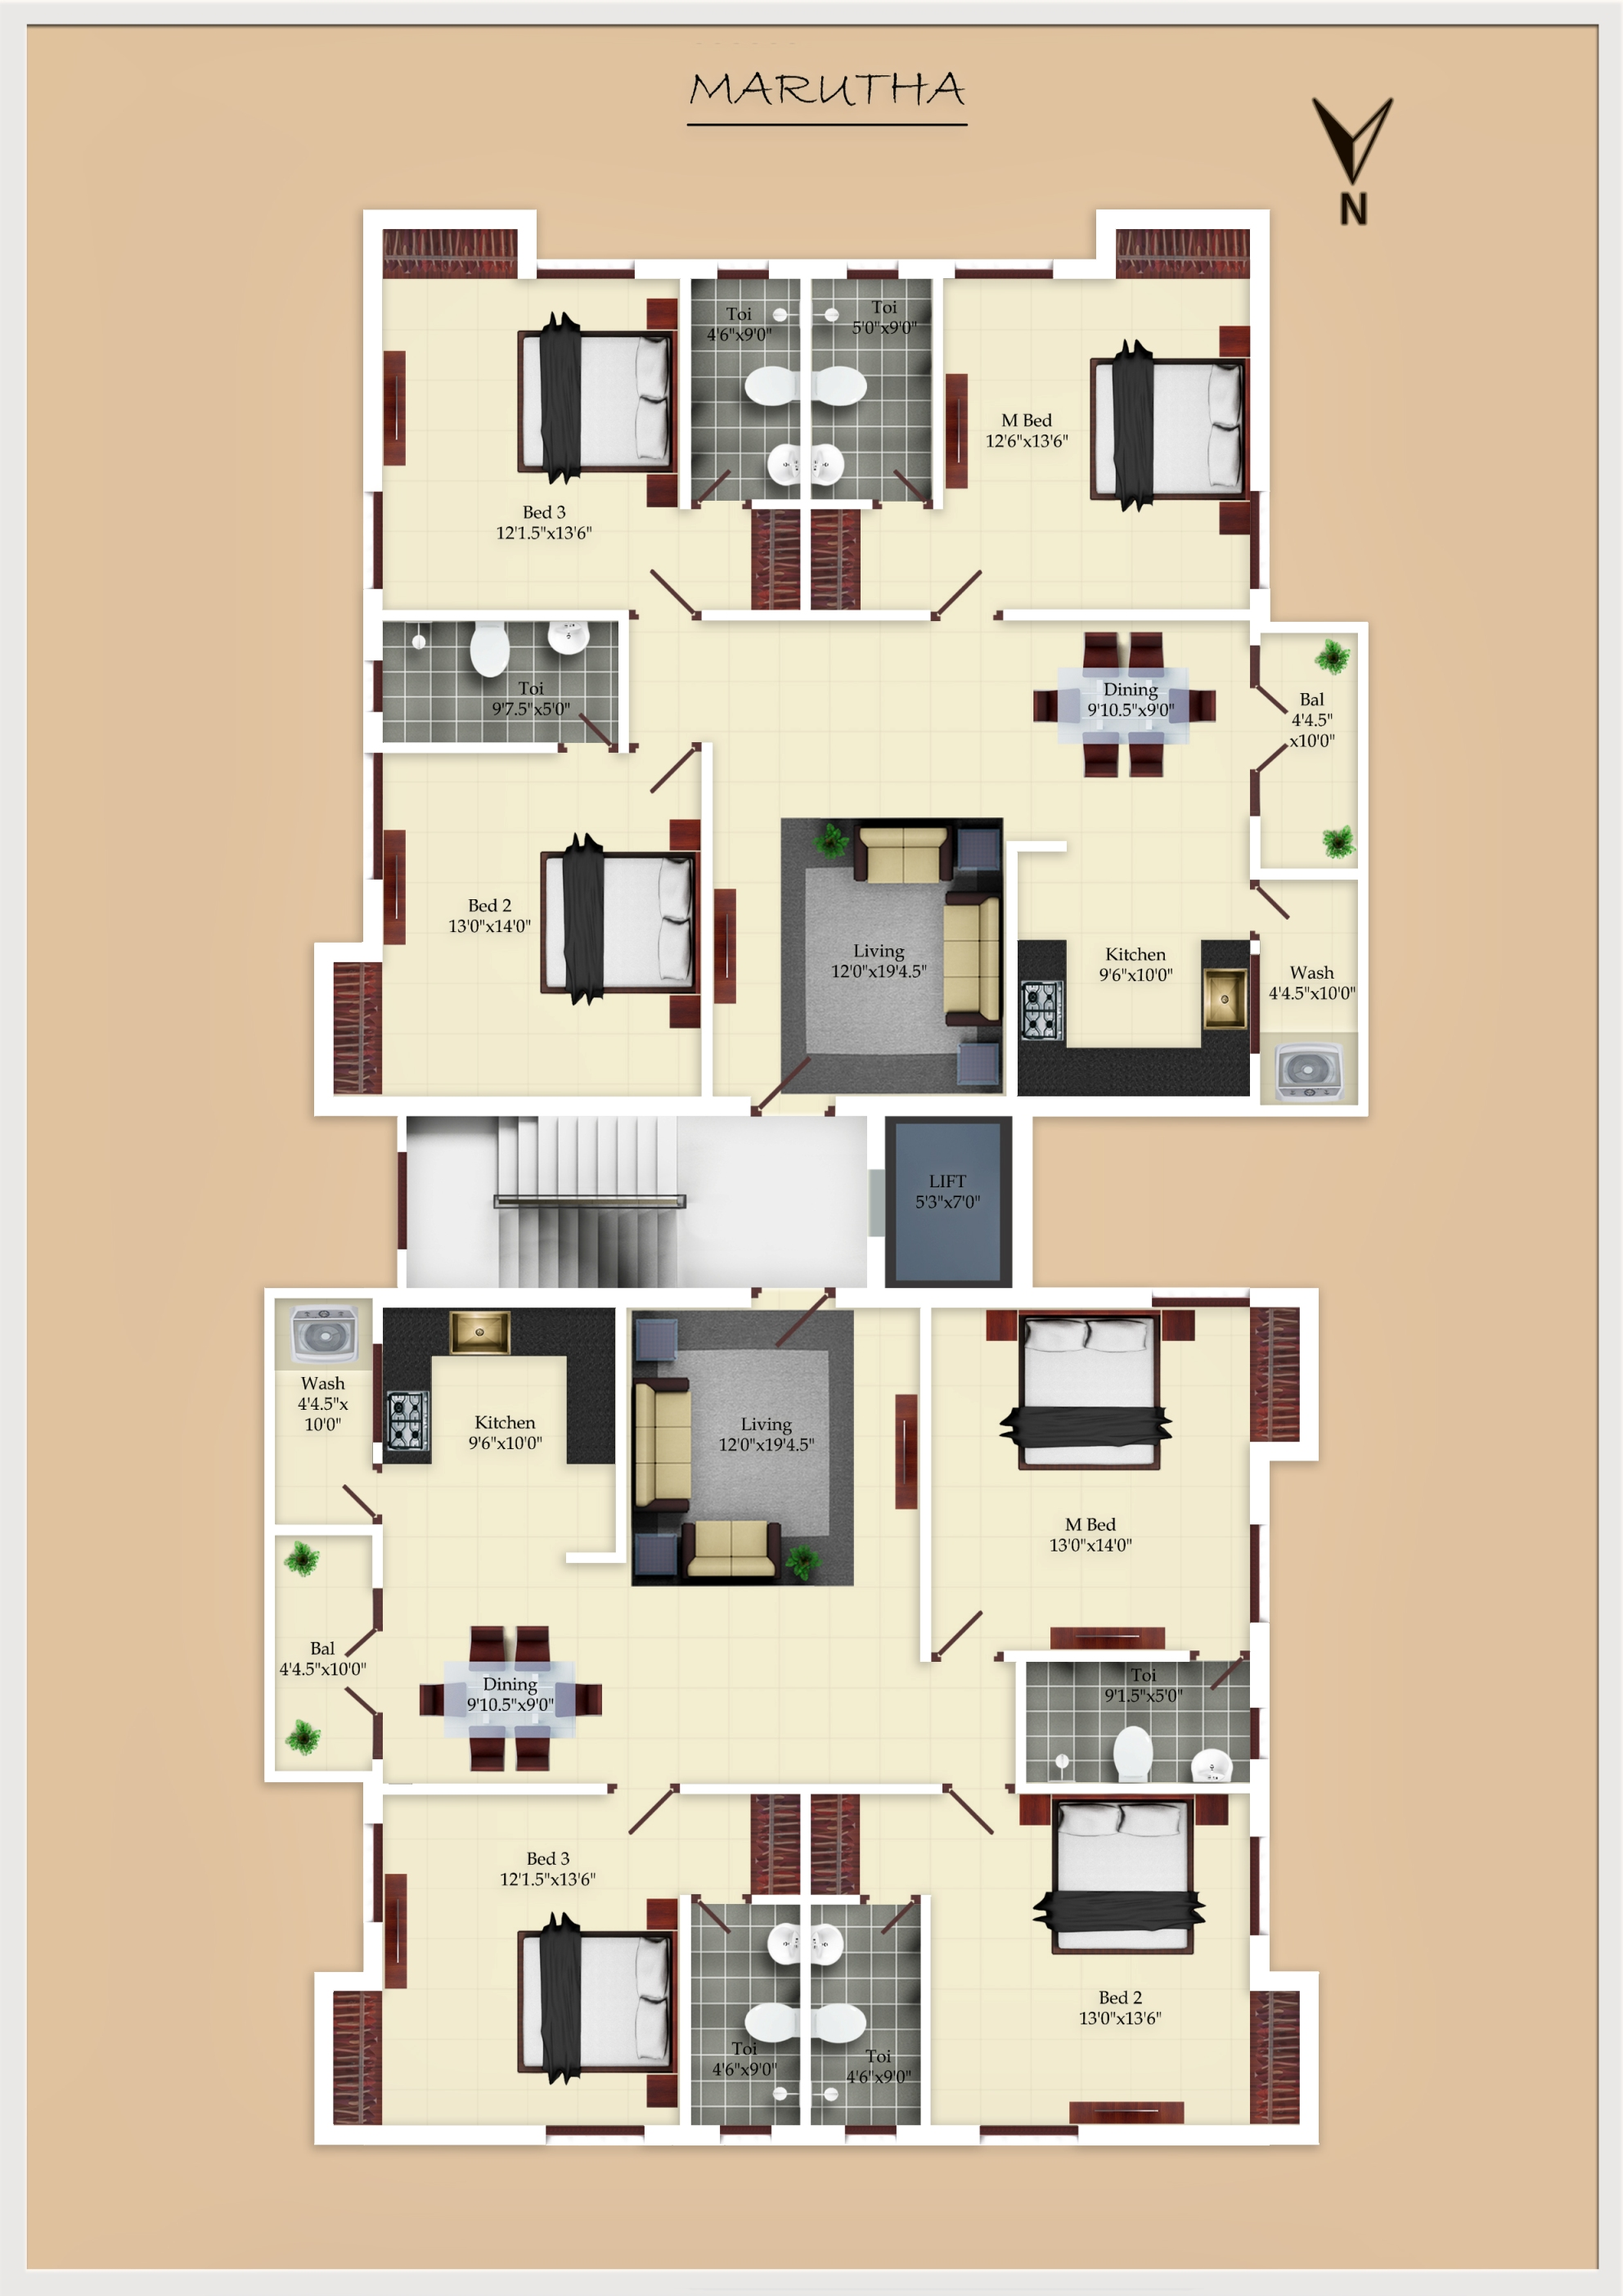 Flats for sale in chetpet ready to occupy flats for First flush diverter plans